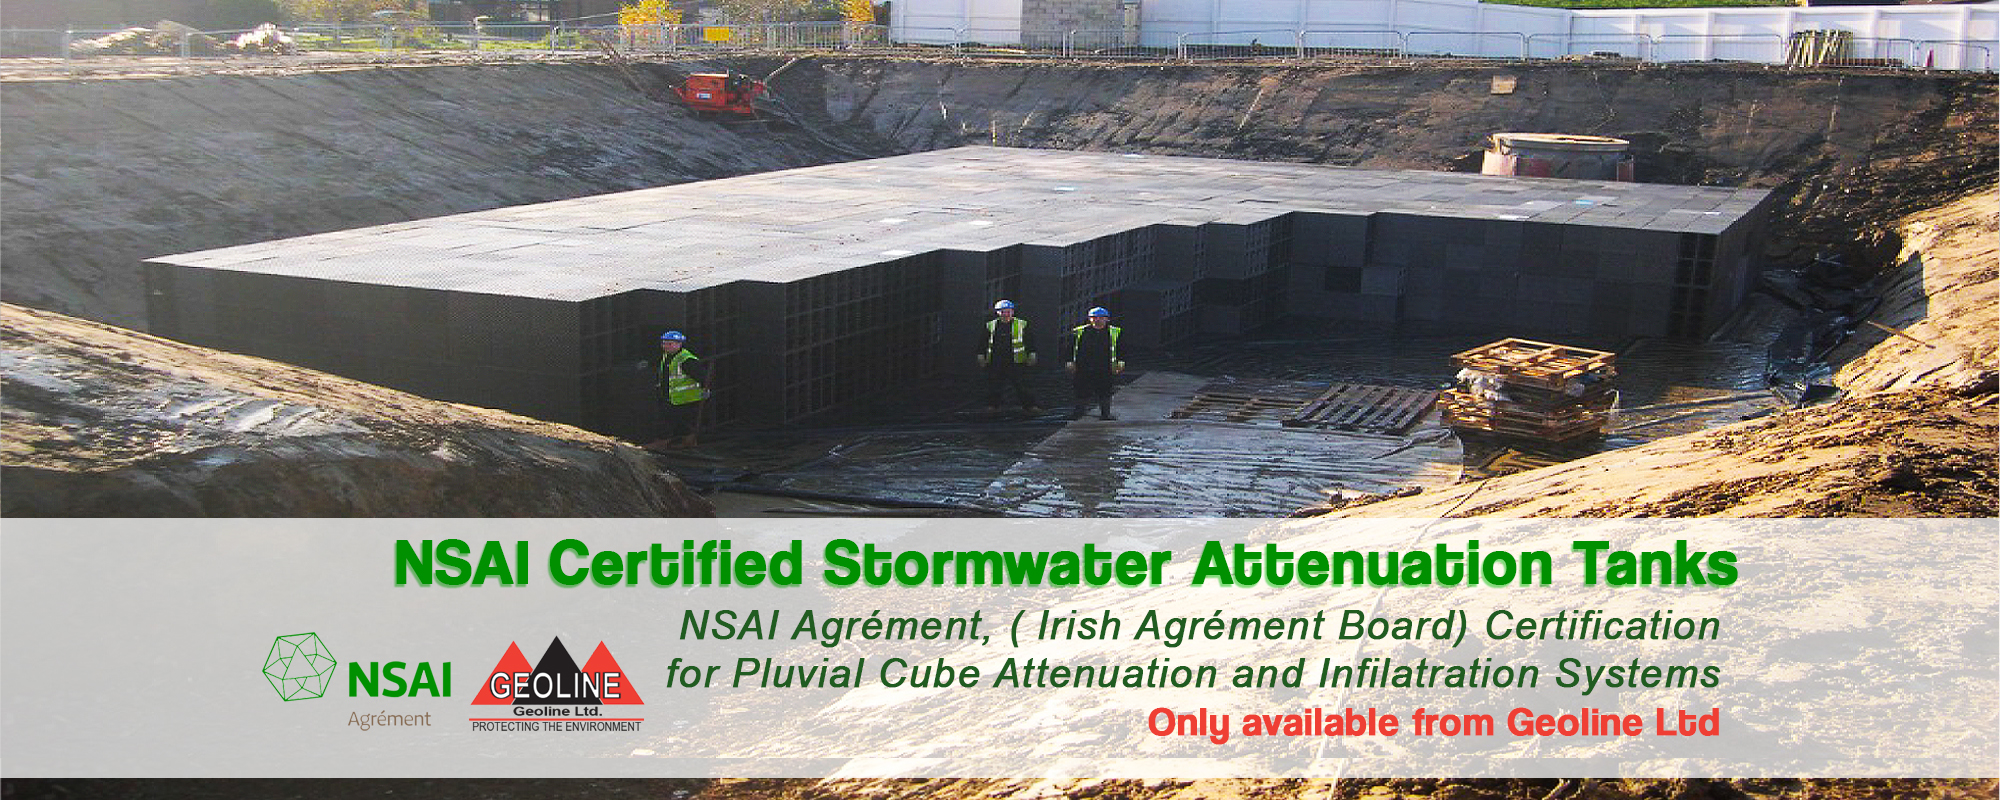 geoline nsai certified storm water attenuation tanks